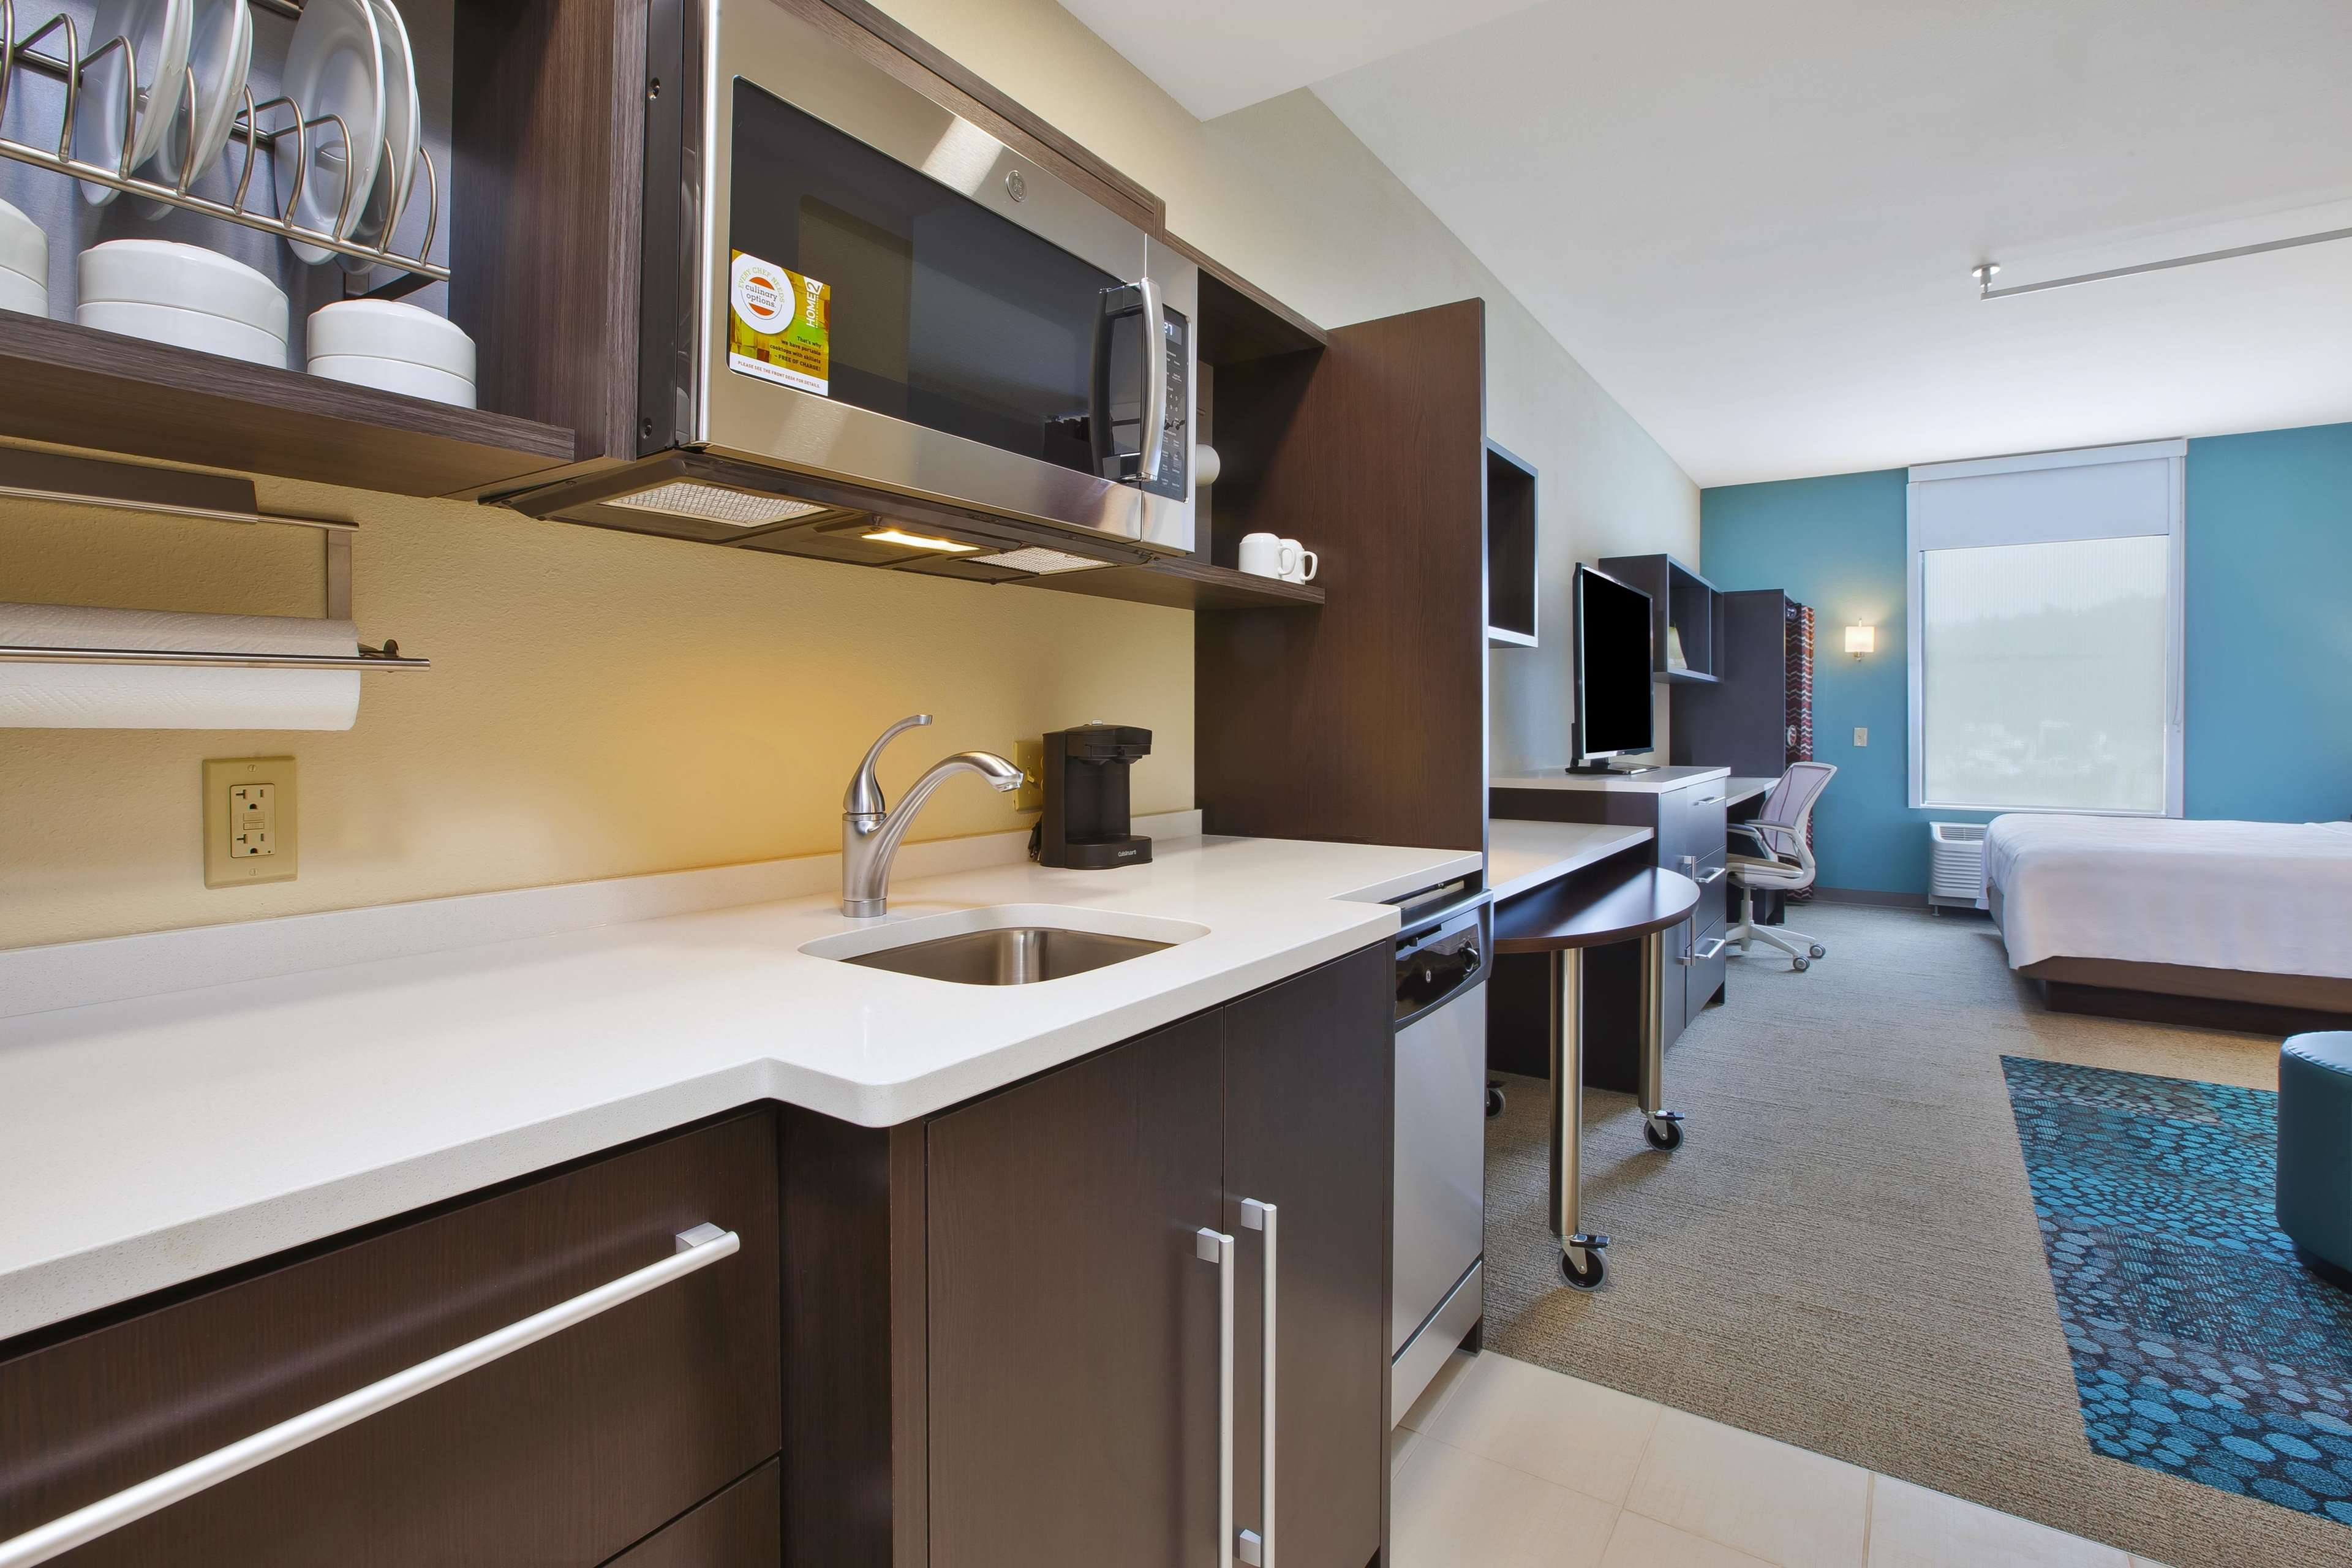 Home2 Suites by Hilton Holland image 18